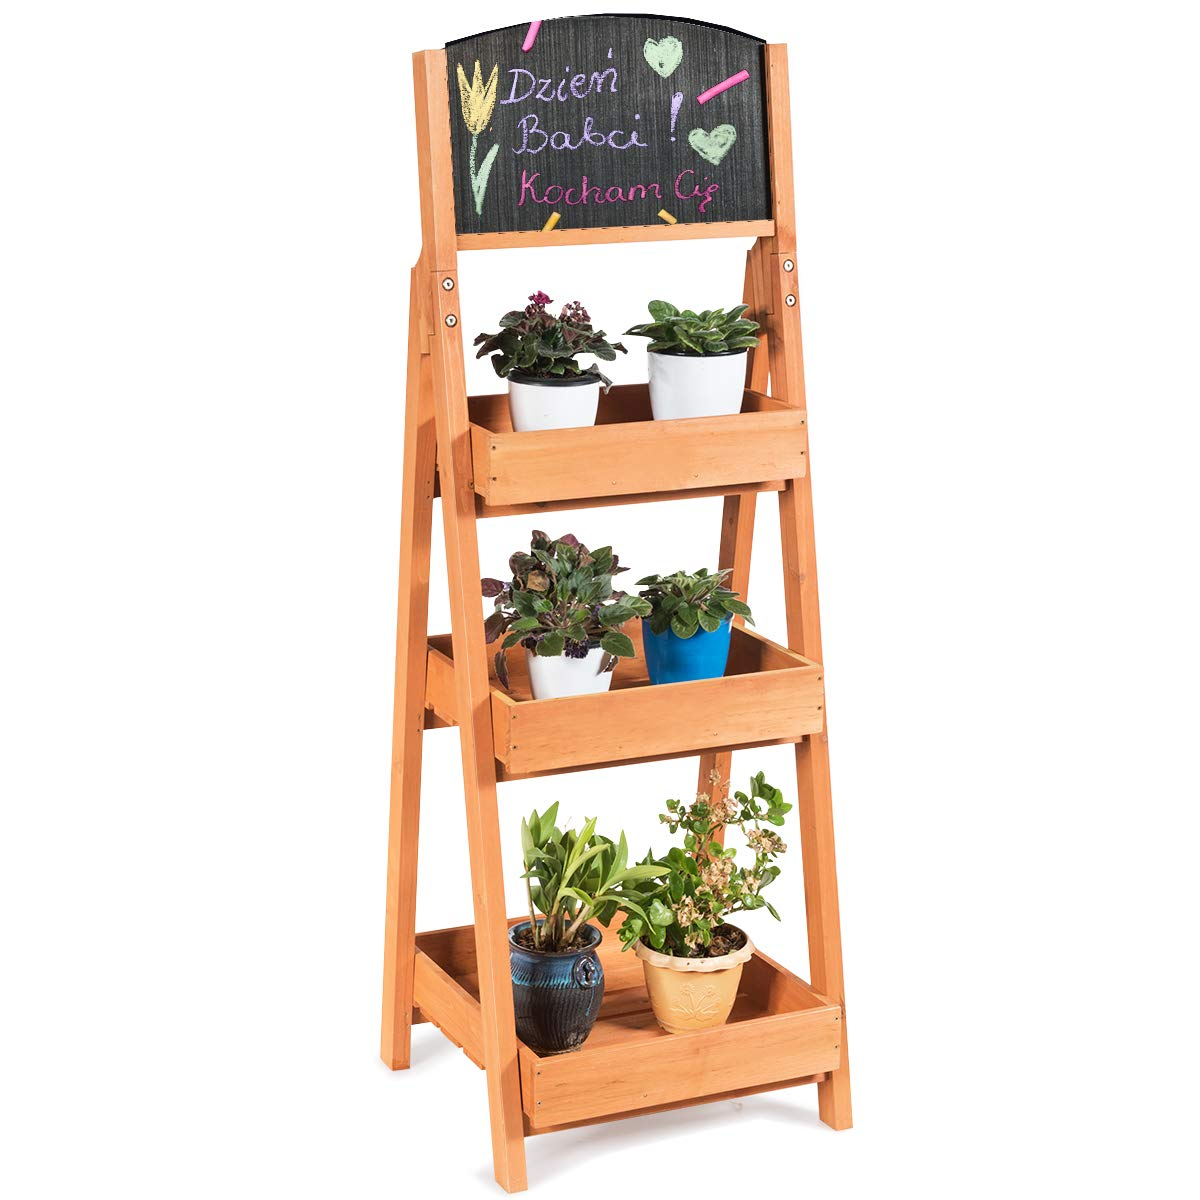 Giantex 3-Tier Plant Stand with Chalkboard Flower Rack with 3 Removable Tray Wood Multipurpose Freestanding Display Shelves by Giantex